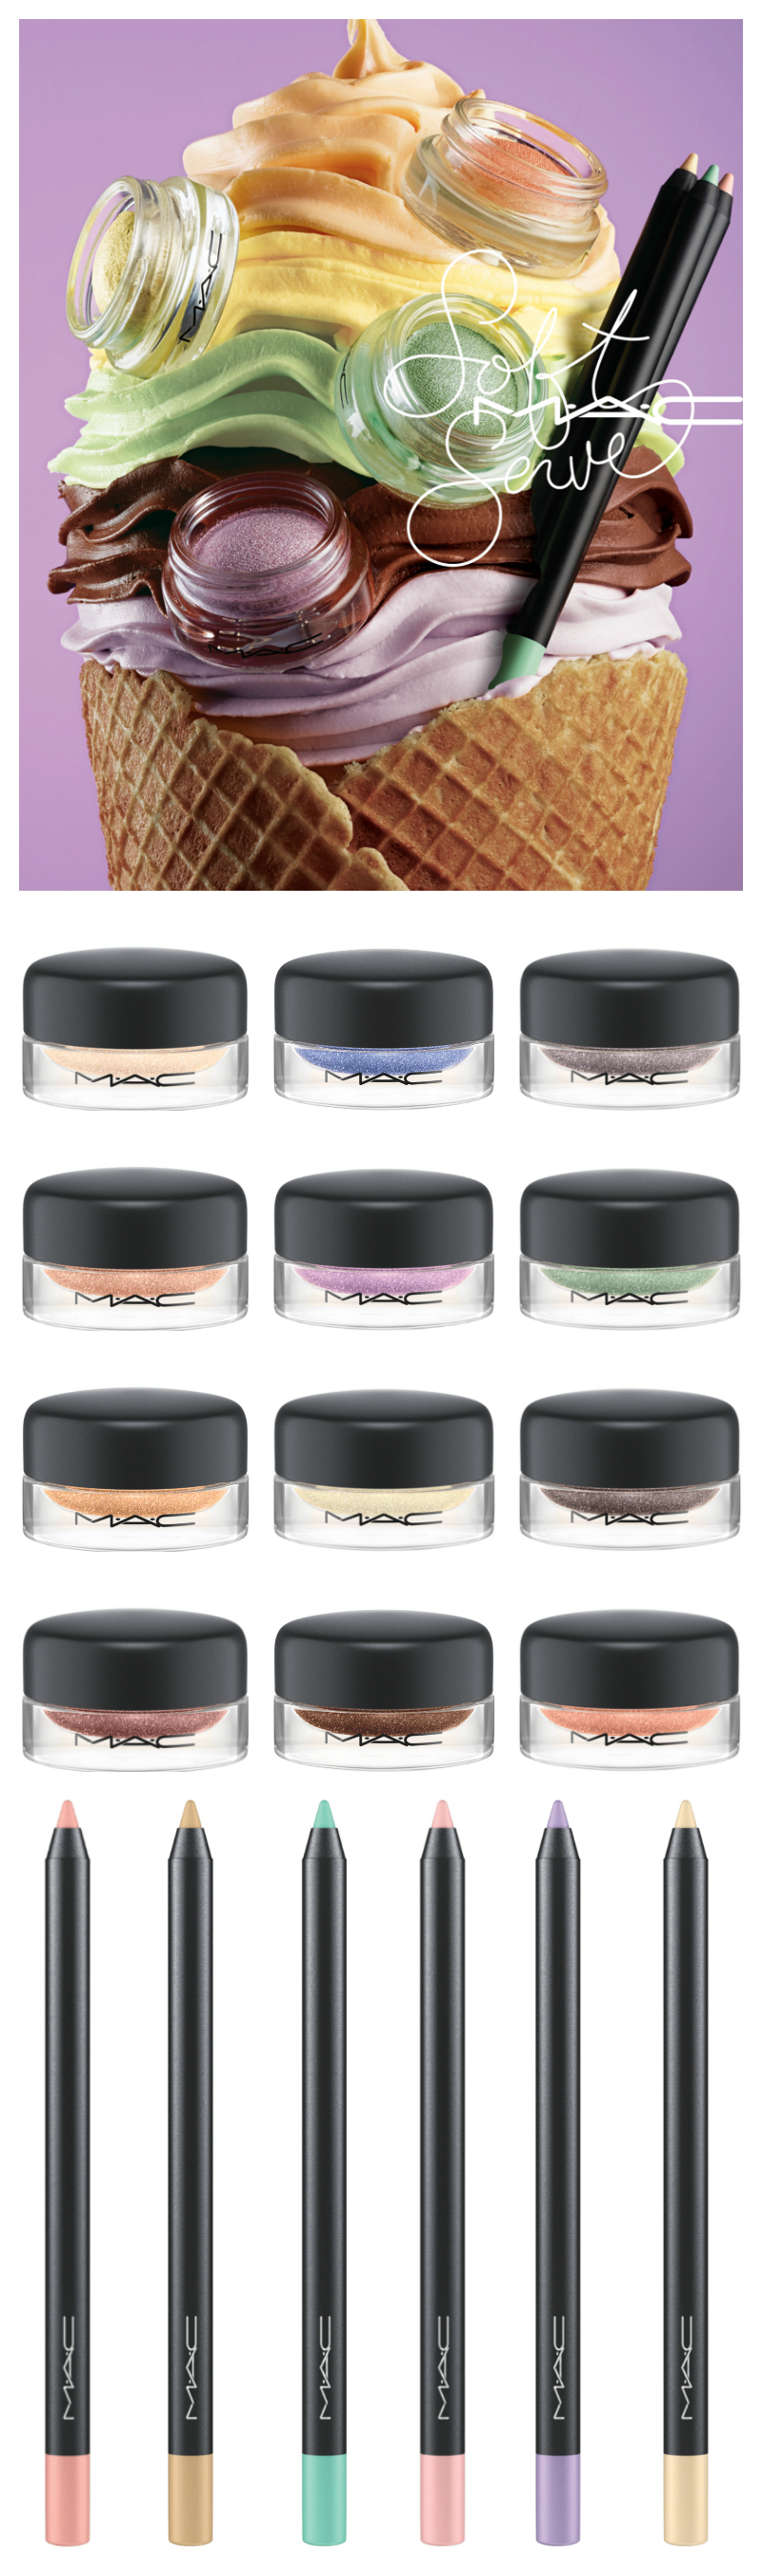 MAC-Soft-Serve-Collection